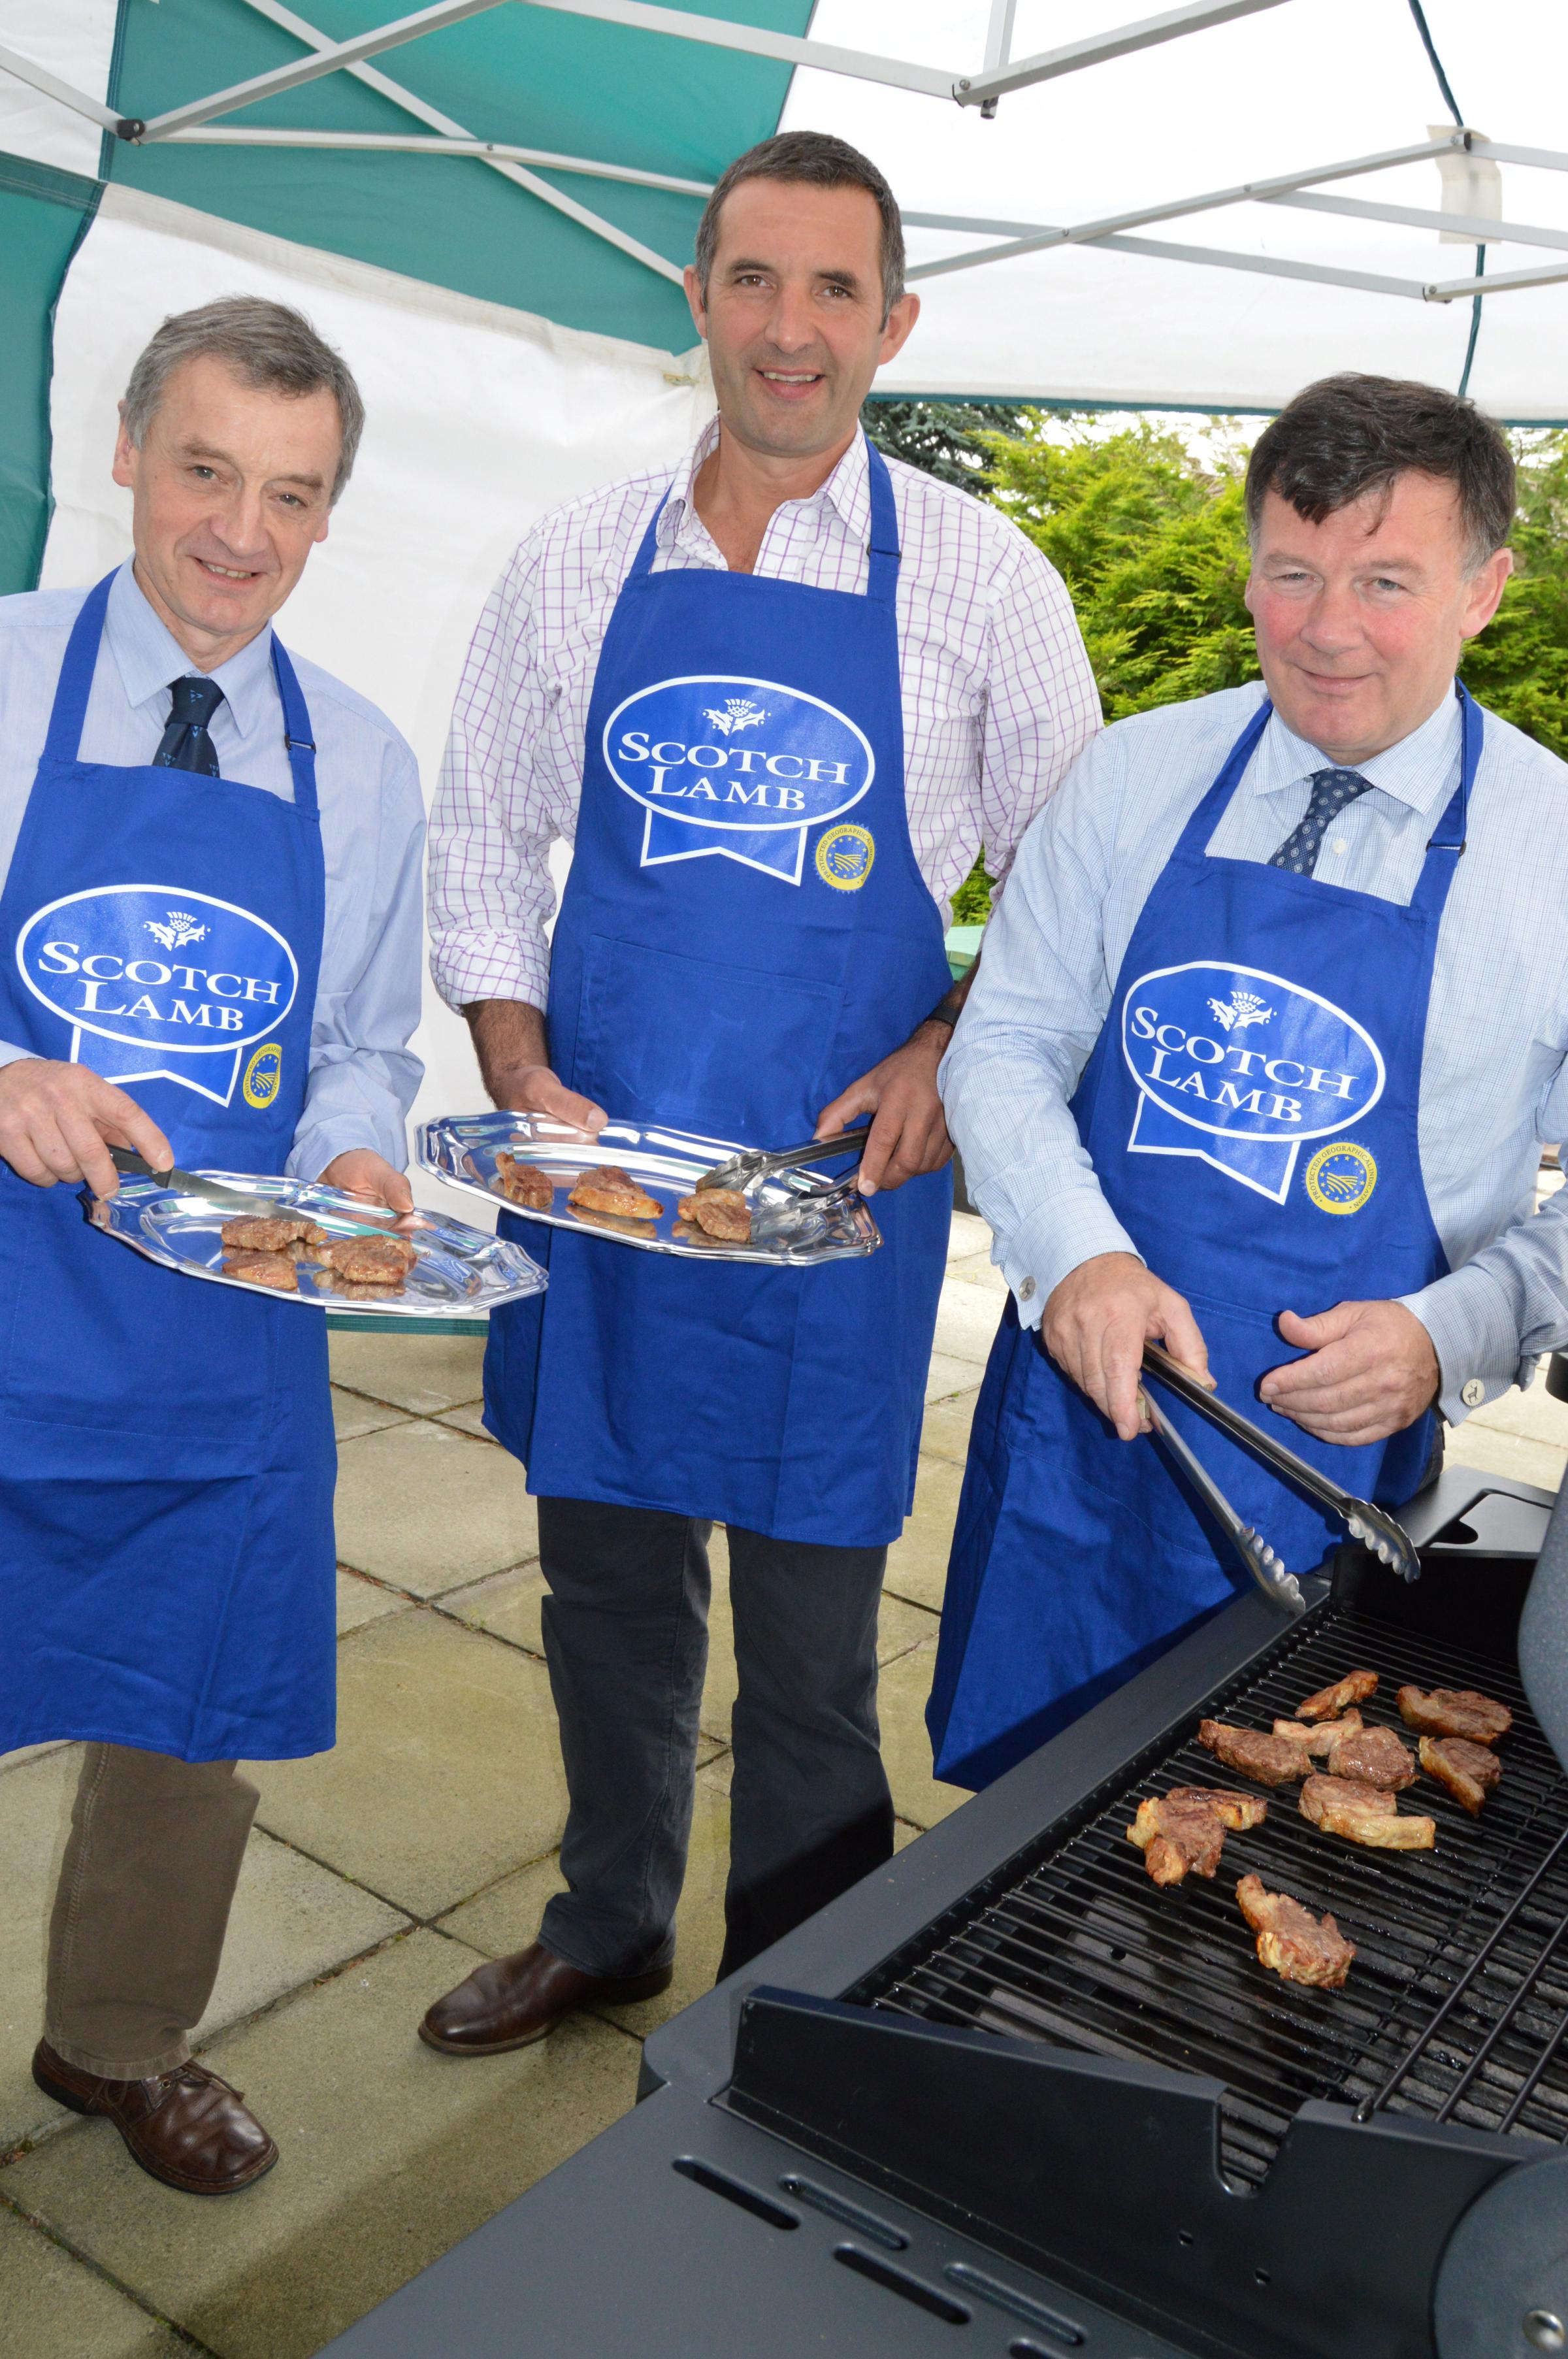 NFU Scotland president Allan Bowie (right) is urging the Scottish public to give tasty Scotch lamb a try this autumn. Also taking on cooking duties here are Ayrshire chairman John Wildman (centre) and Livestock chair Charlie Adam